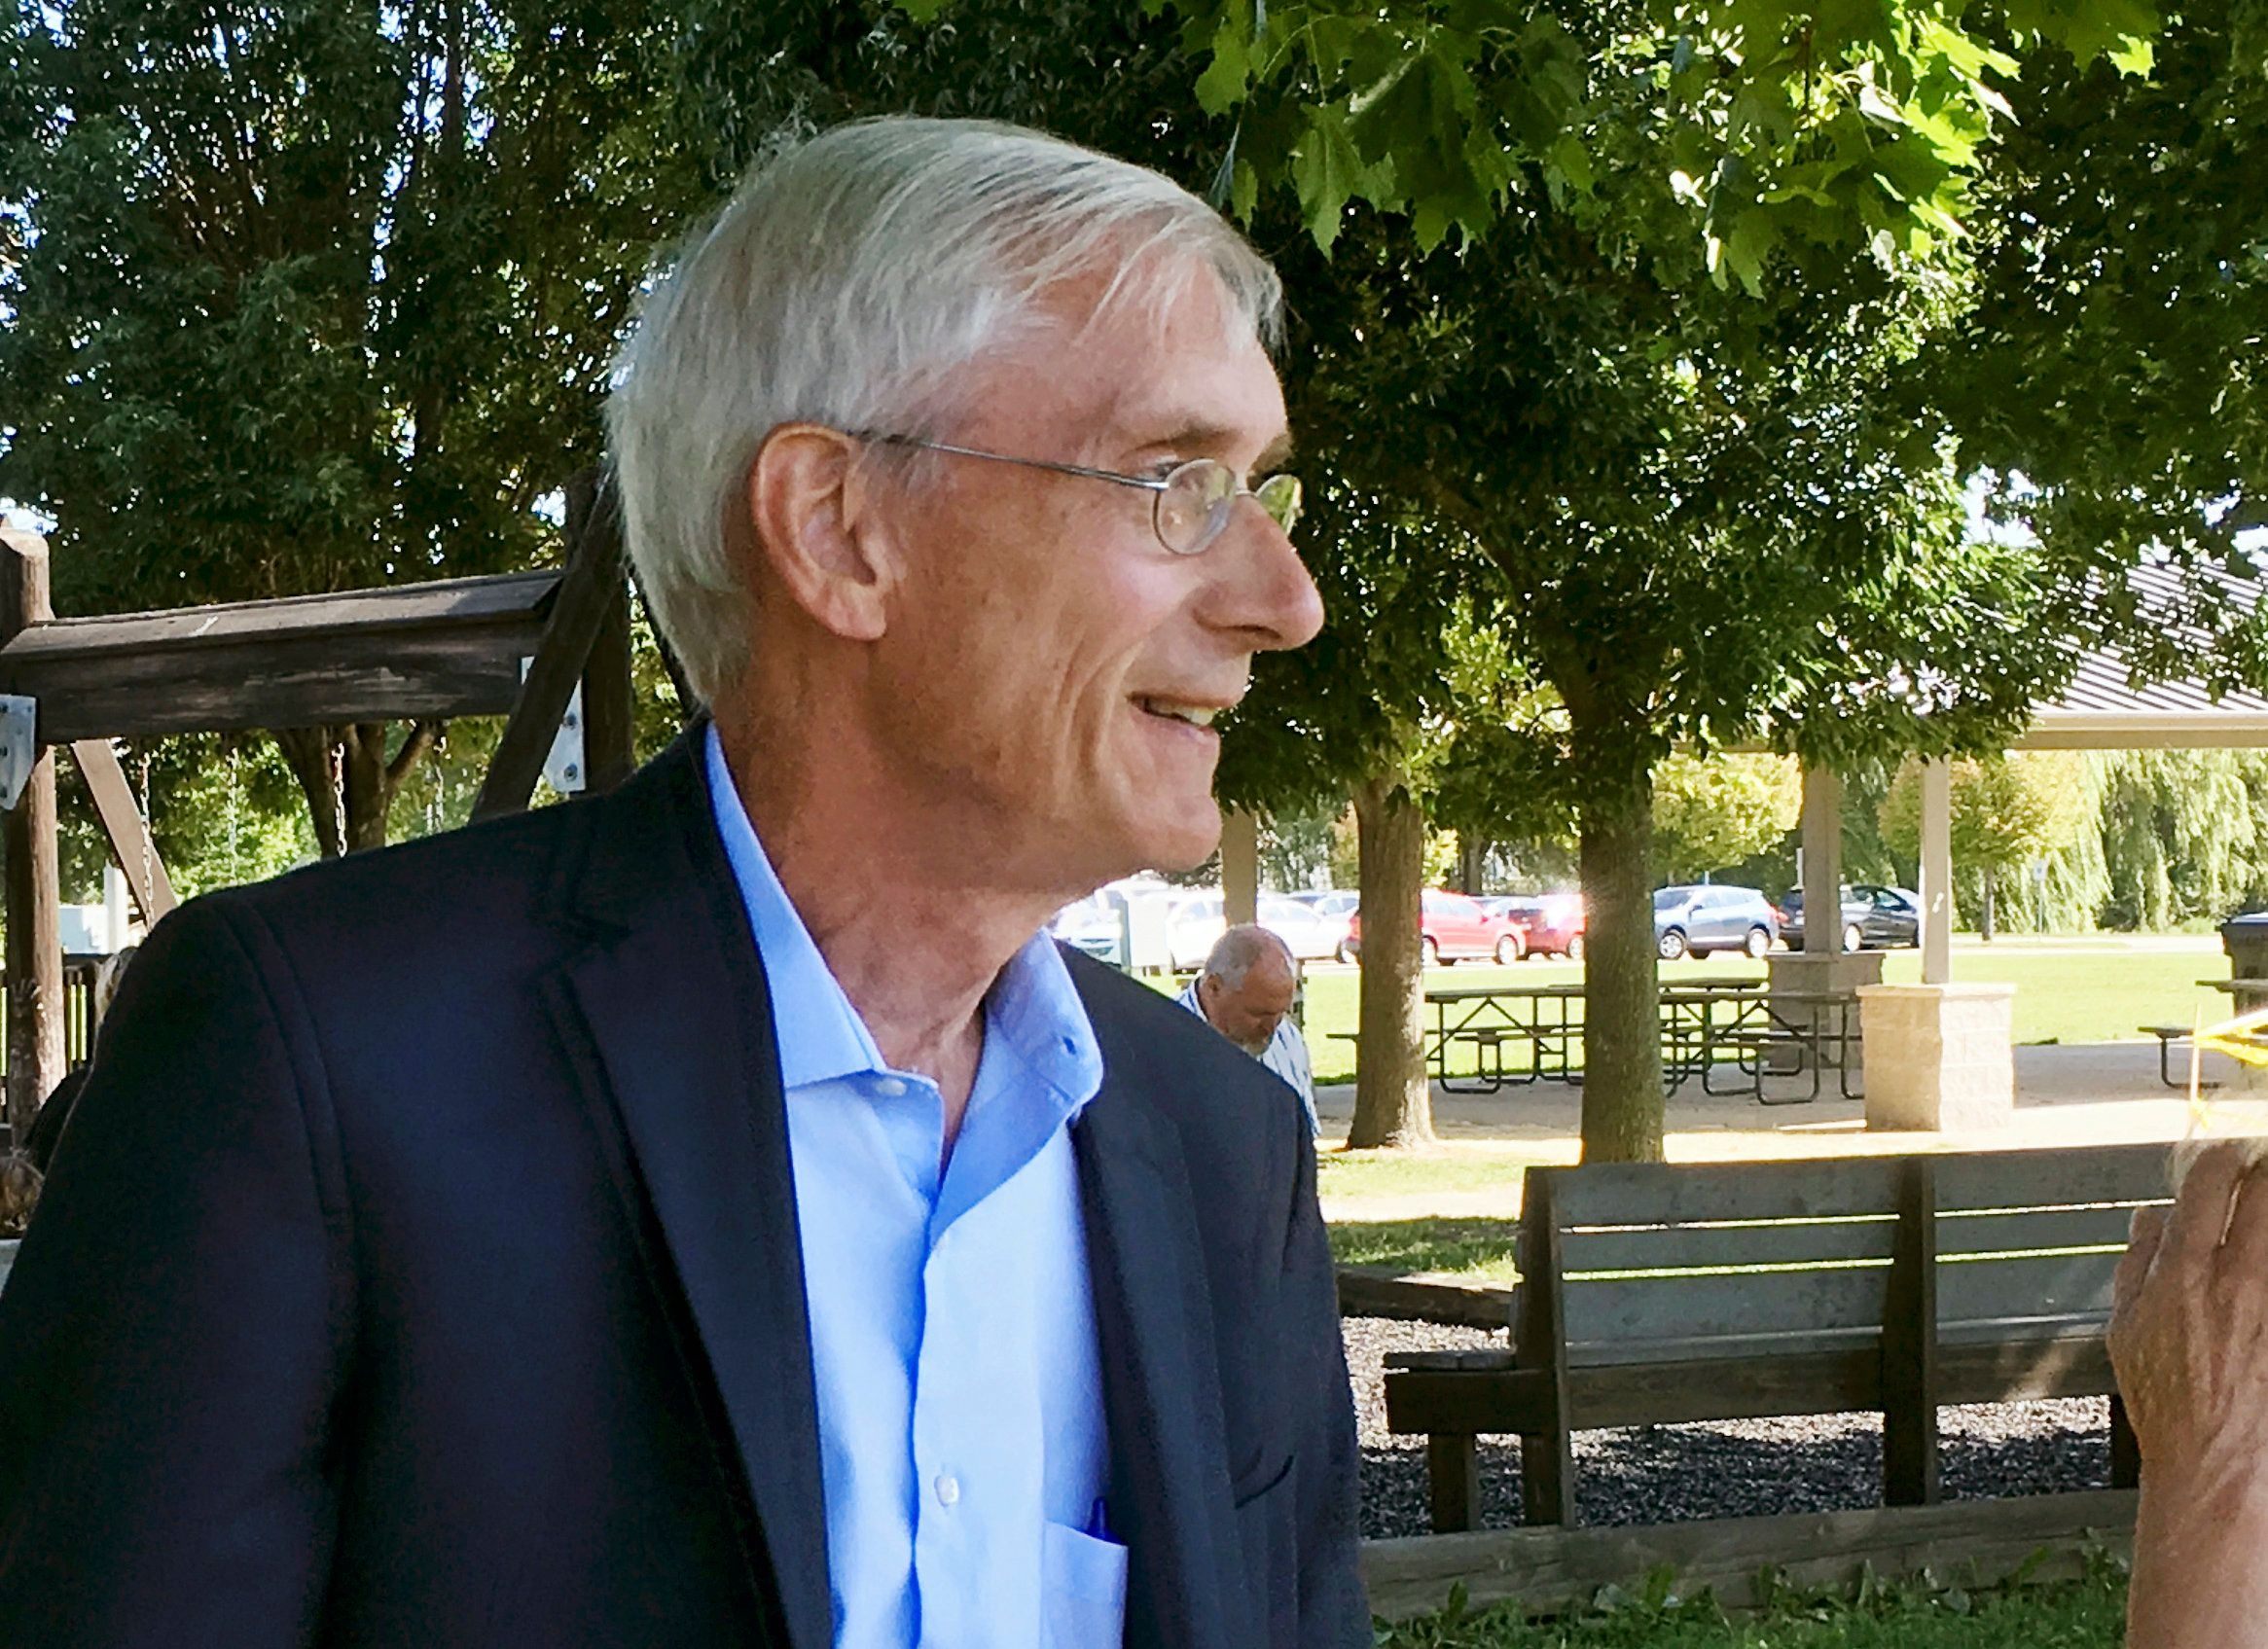 Wisconsin state schools Superintendent Tony Evers greets supporters at a park in Fitchburg, Wis., on Wednesday, Aug. 23, 2017, moments before announcing he will run for governor in 2018. (AP Photo/Todd Richmond)